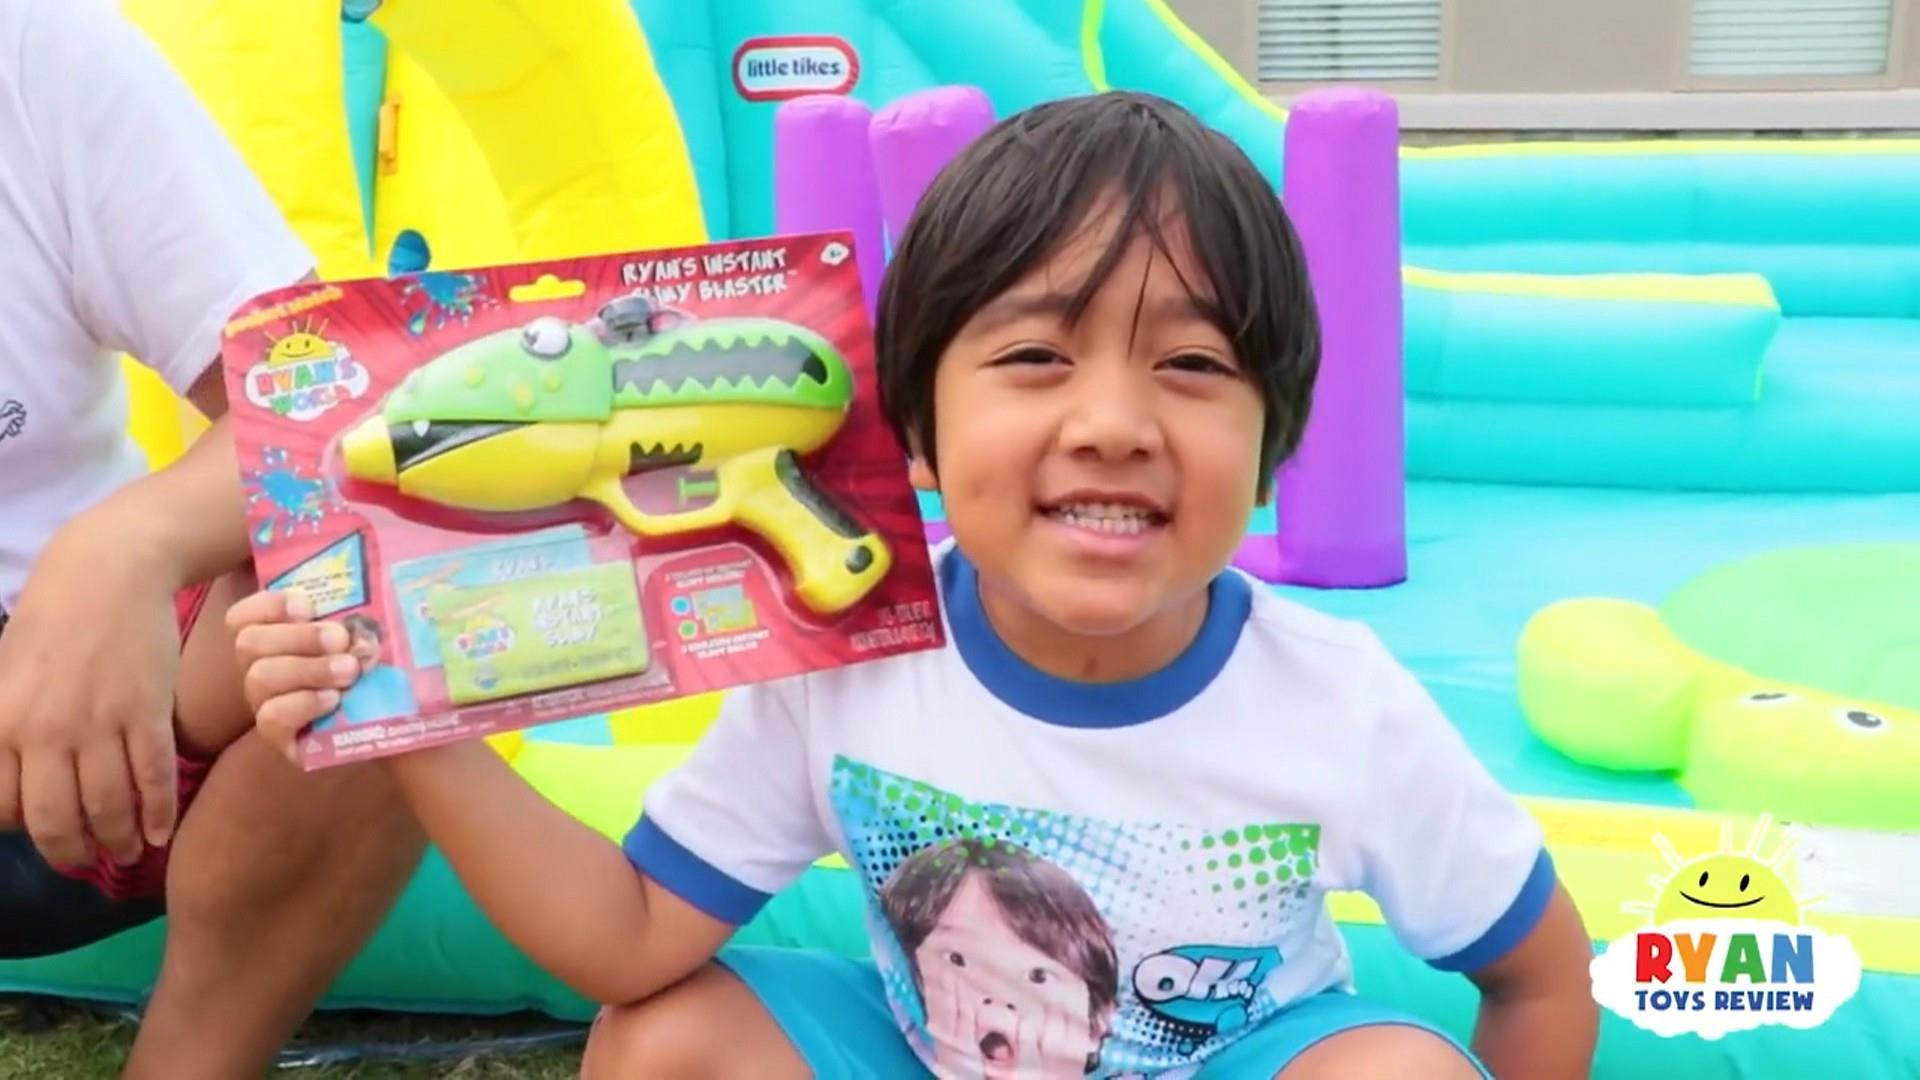 dadbb5870410d Meet the 6-year-old launching his own toy line with Walmart